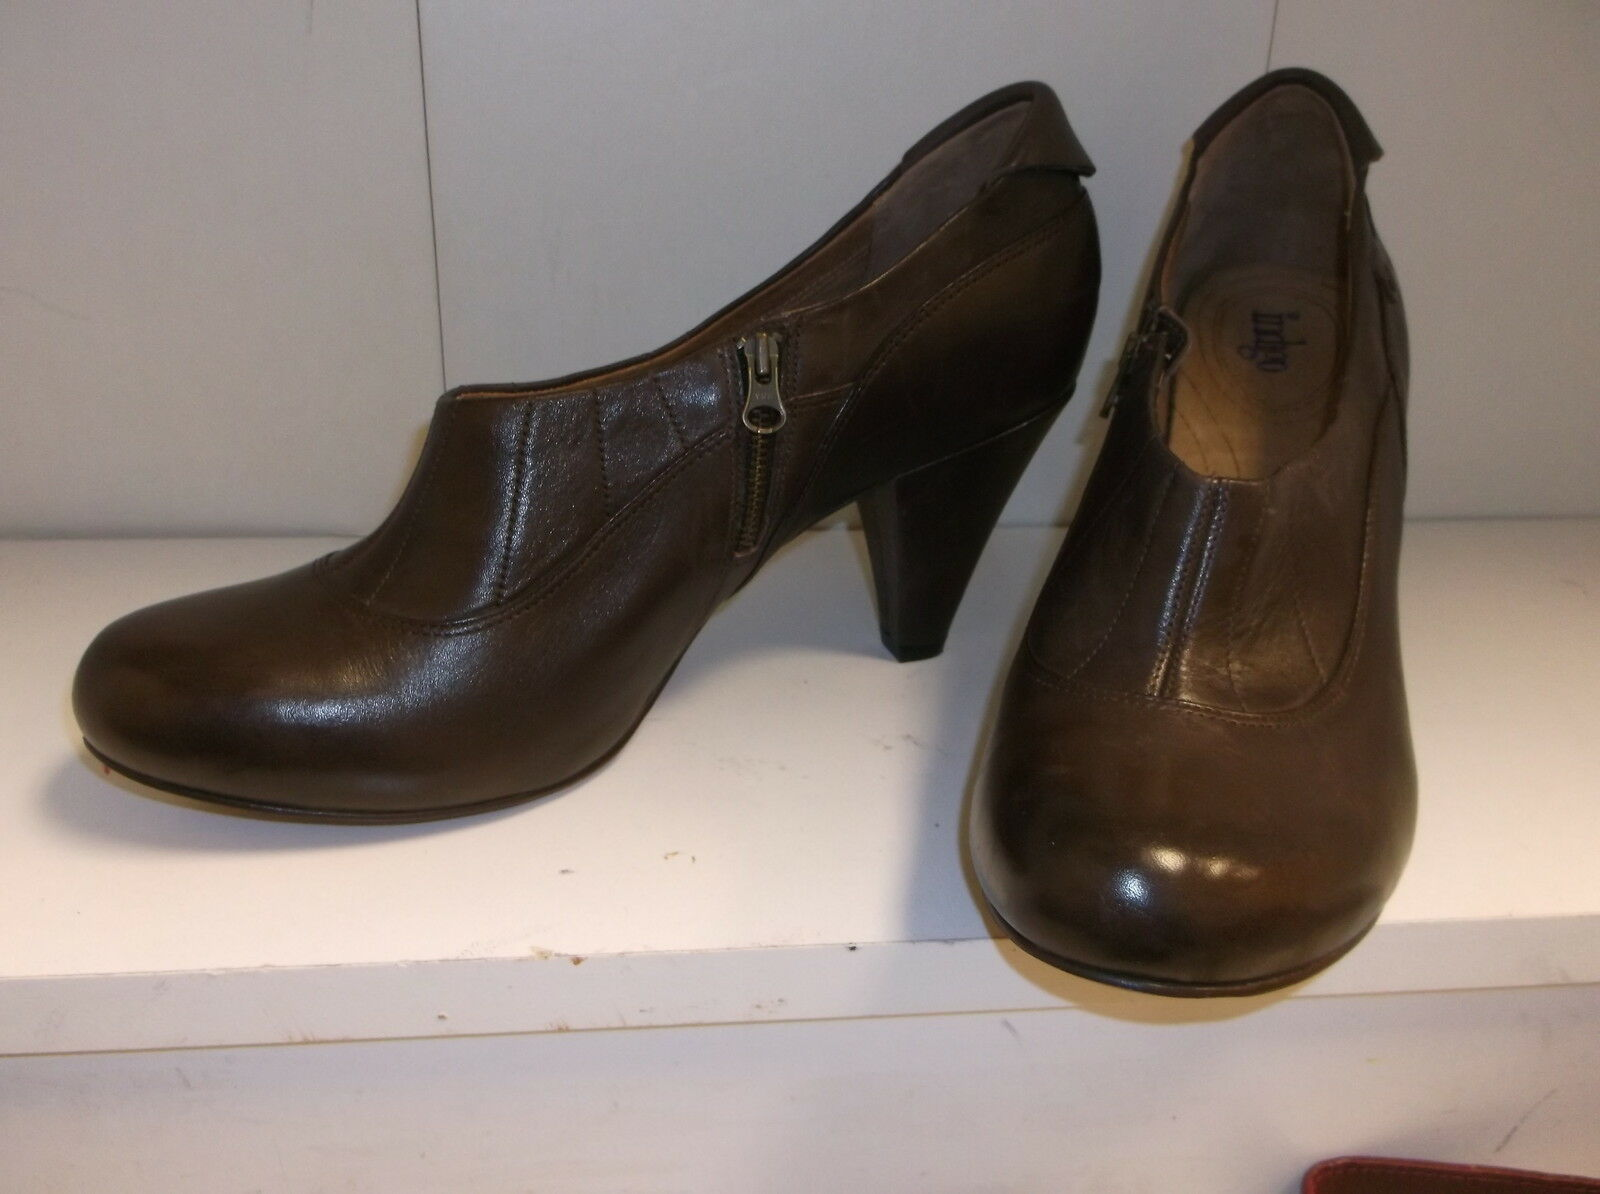 Indigo by Clarks Women's  Brown Leather Heels Ankle  Boots Booties 11M